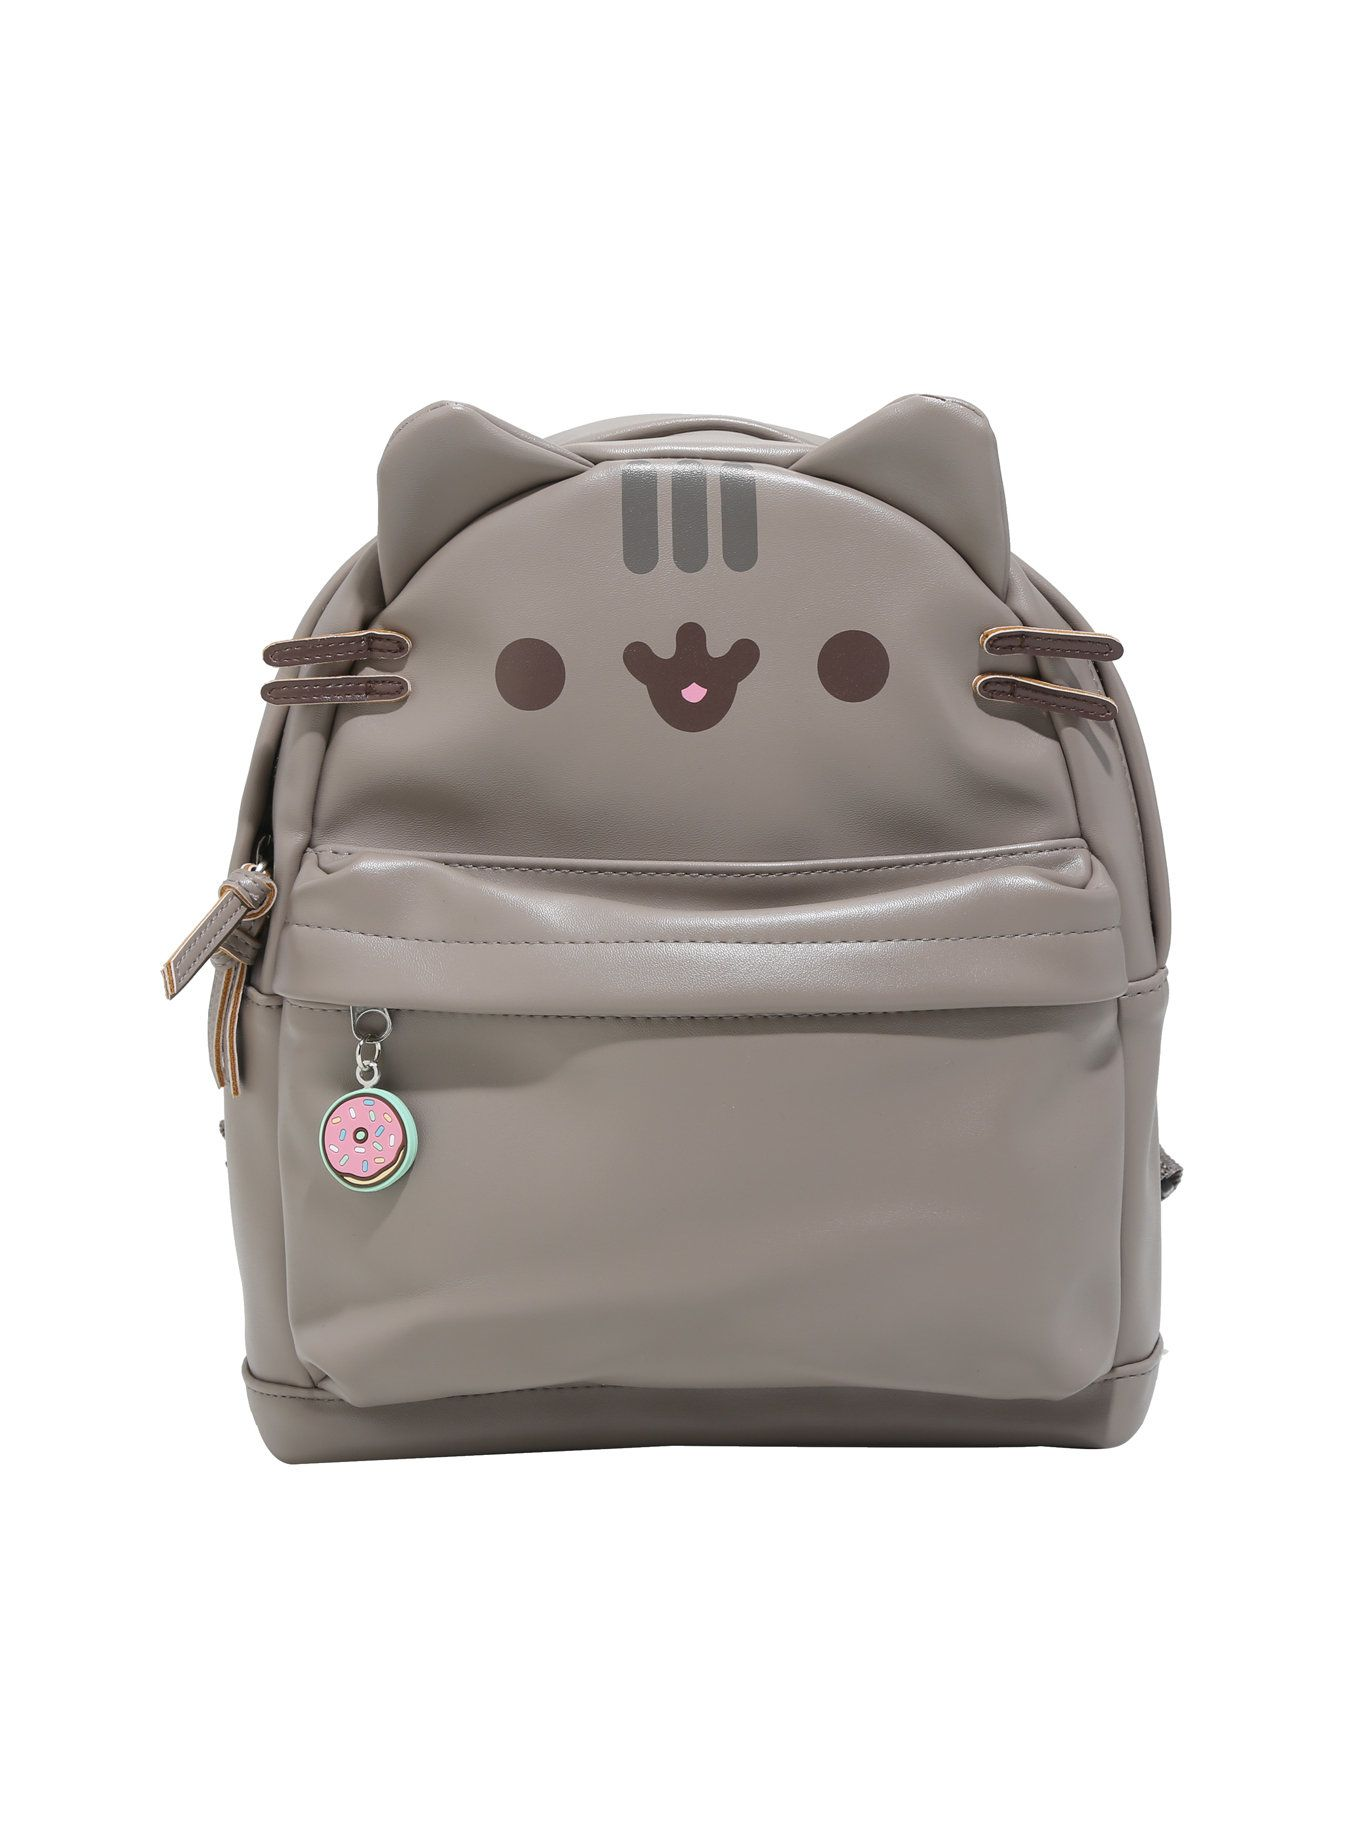 Pusheen Faux Leather Mini Backpack   Pin of the Day   Pinterest ... c98be46a31